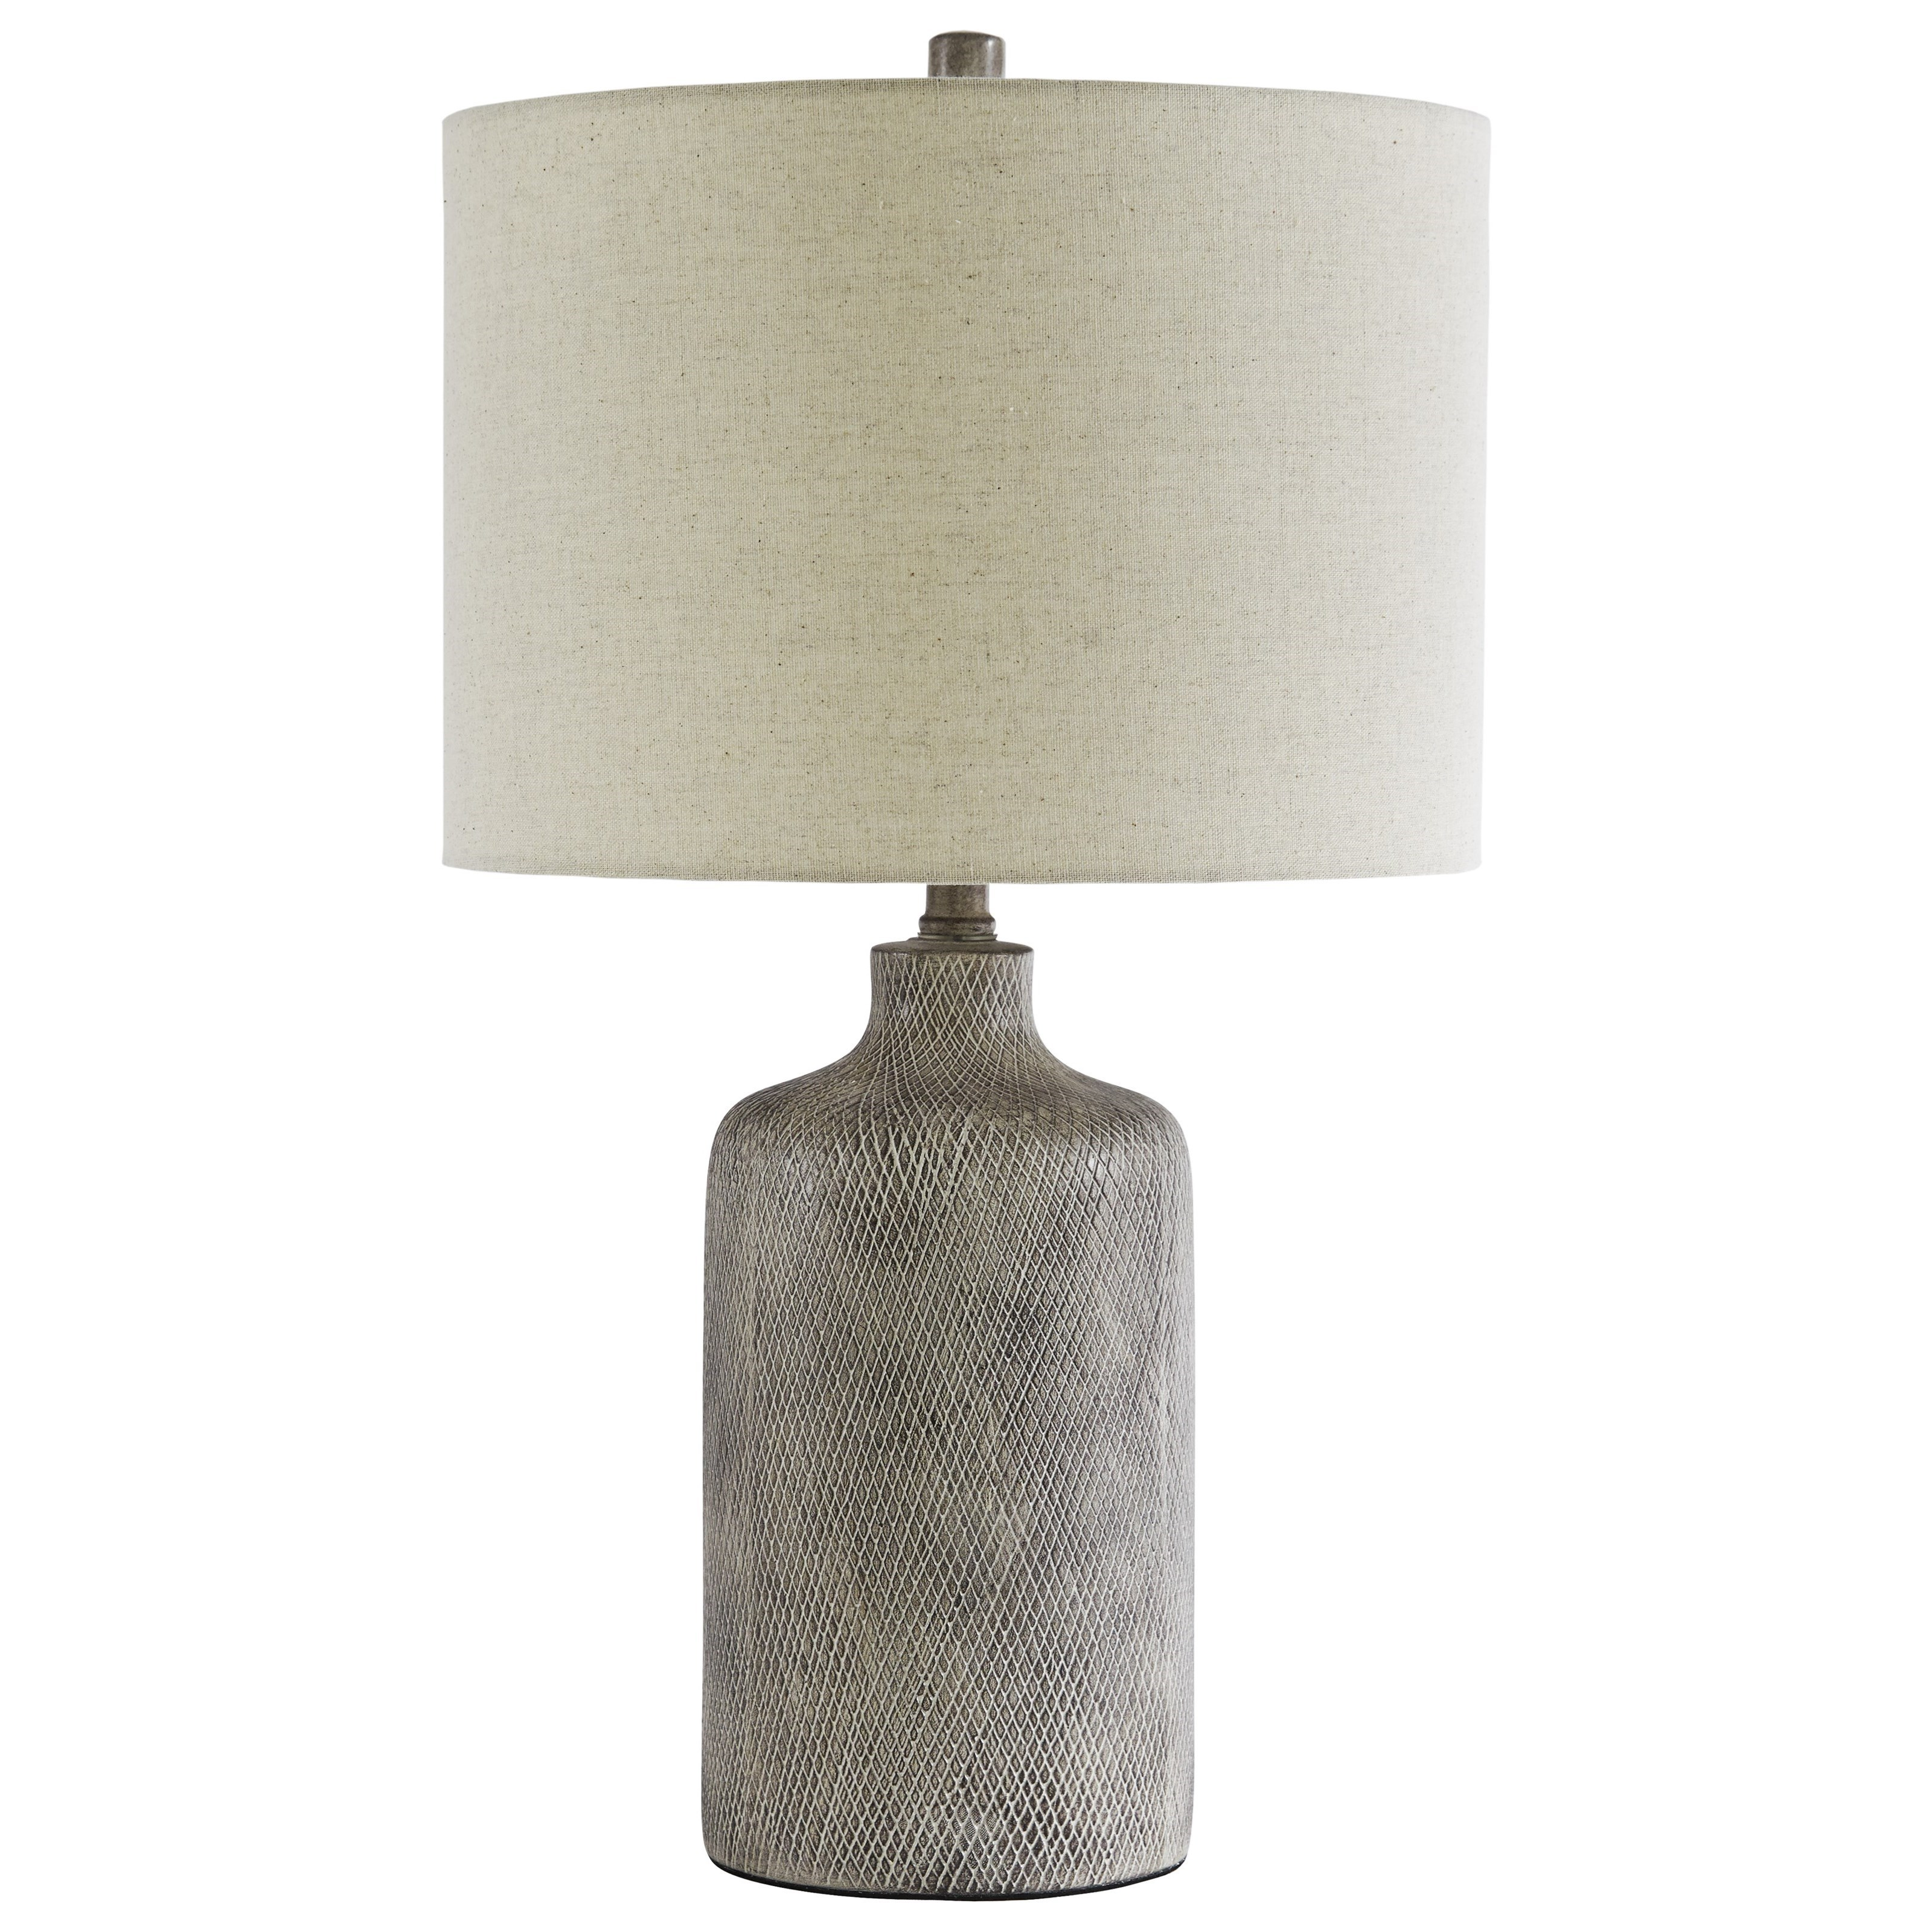 Lamps - Contemporary Table Lamp by Signature Design by Ashley at HomeWorld Furniture